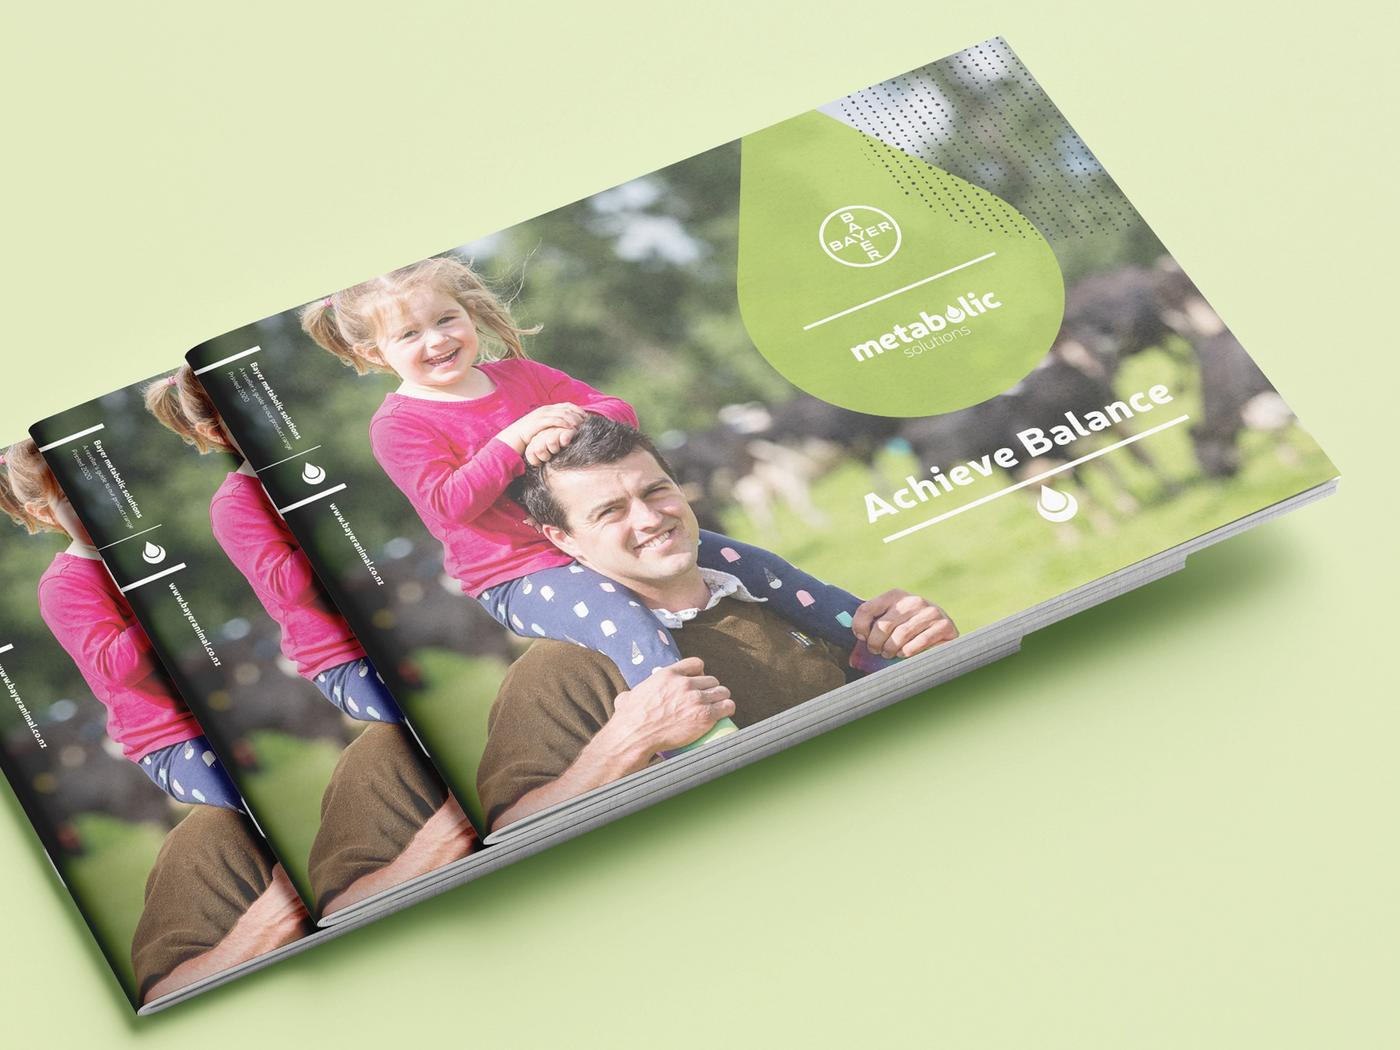 Bayer achieve balance book